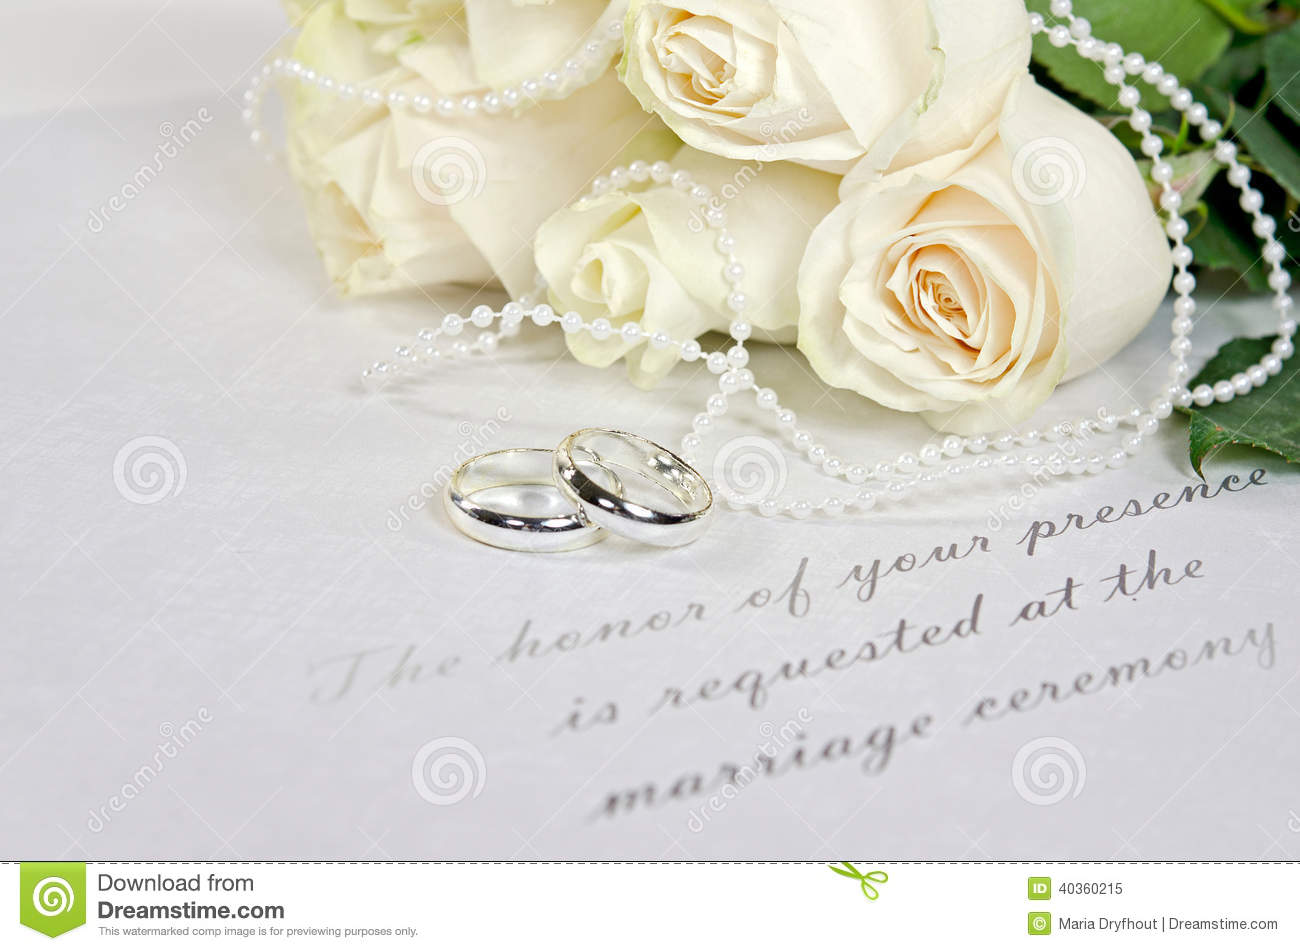 hd bouquet com hands wallpaper rings roses wedding